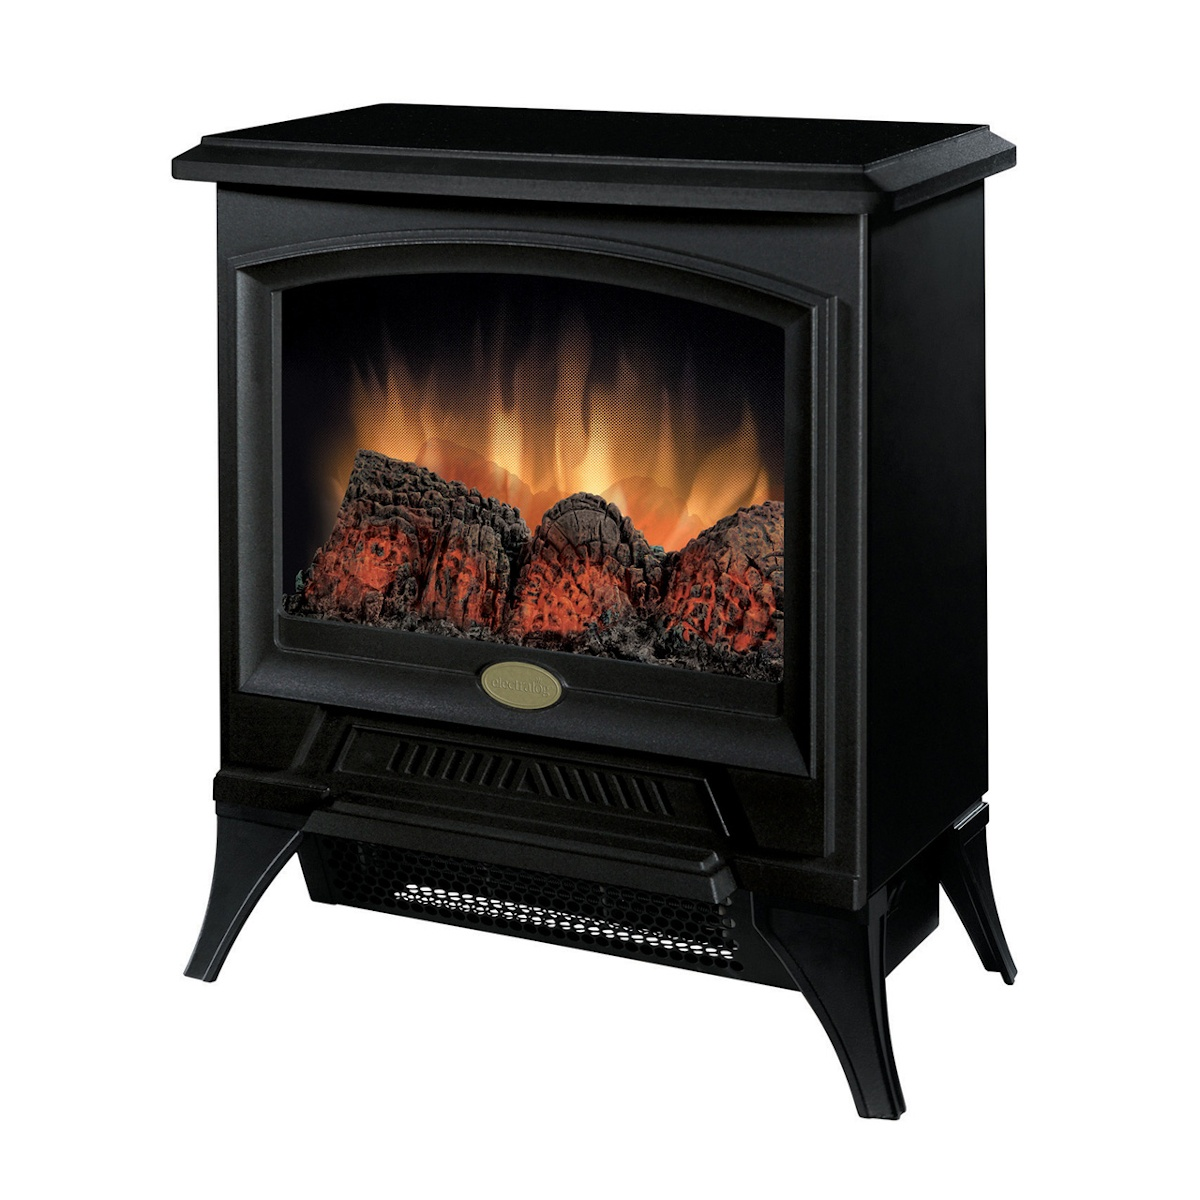 Dimplex Compact Electric Stove in Black Model Number CS-12056A